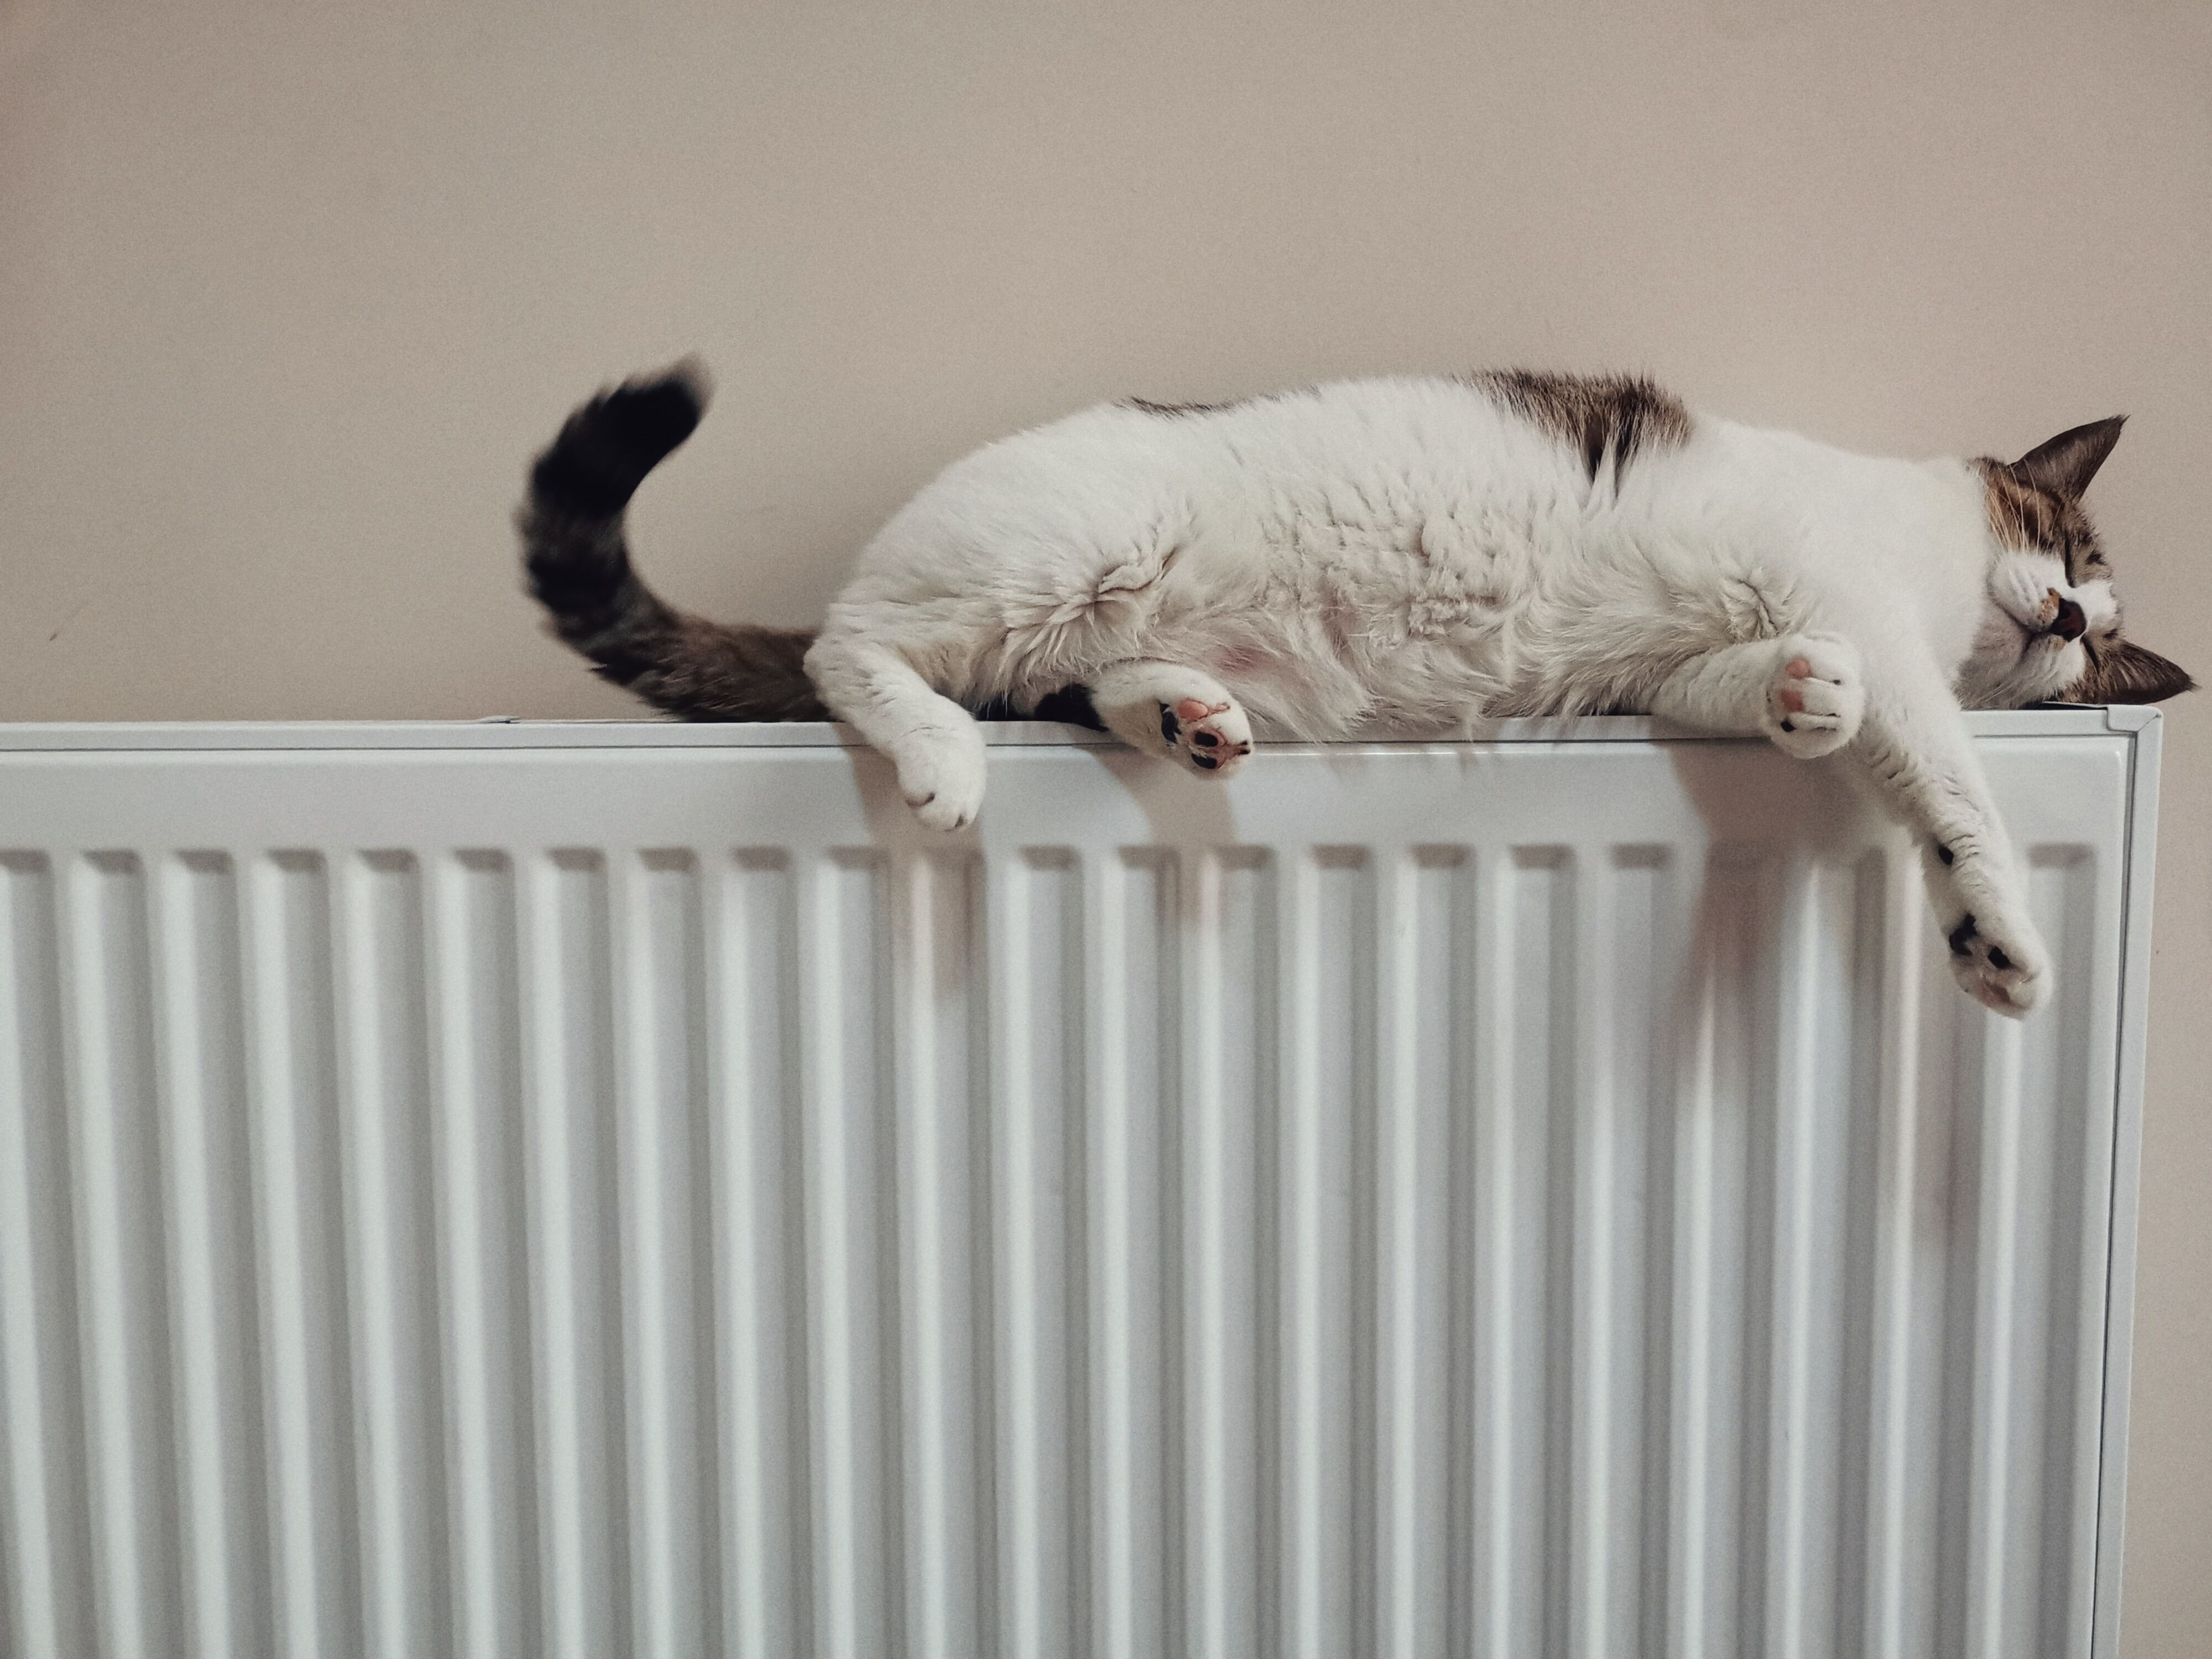 How to balance your home radiator?